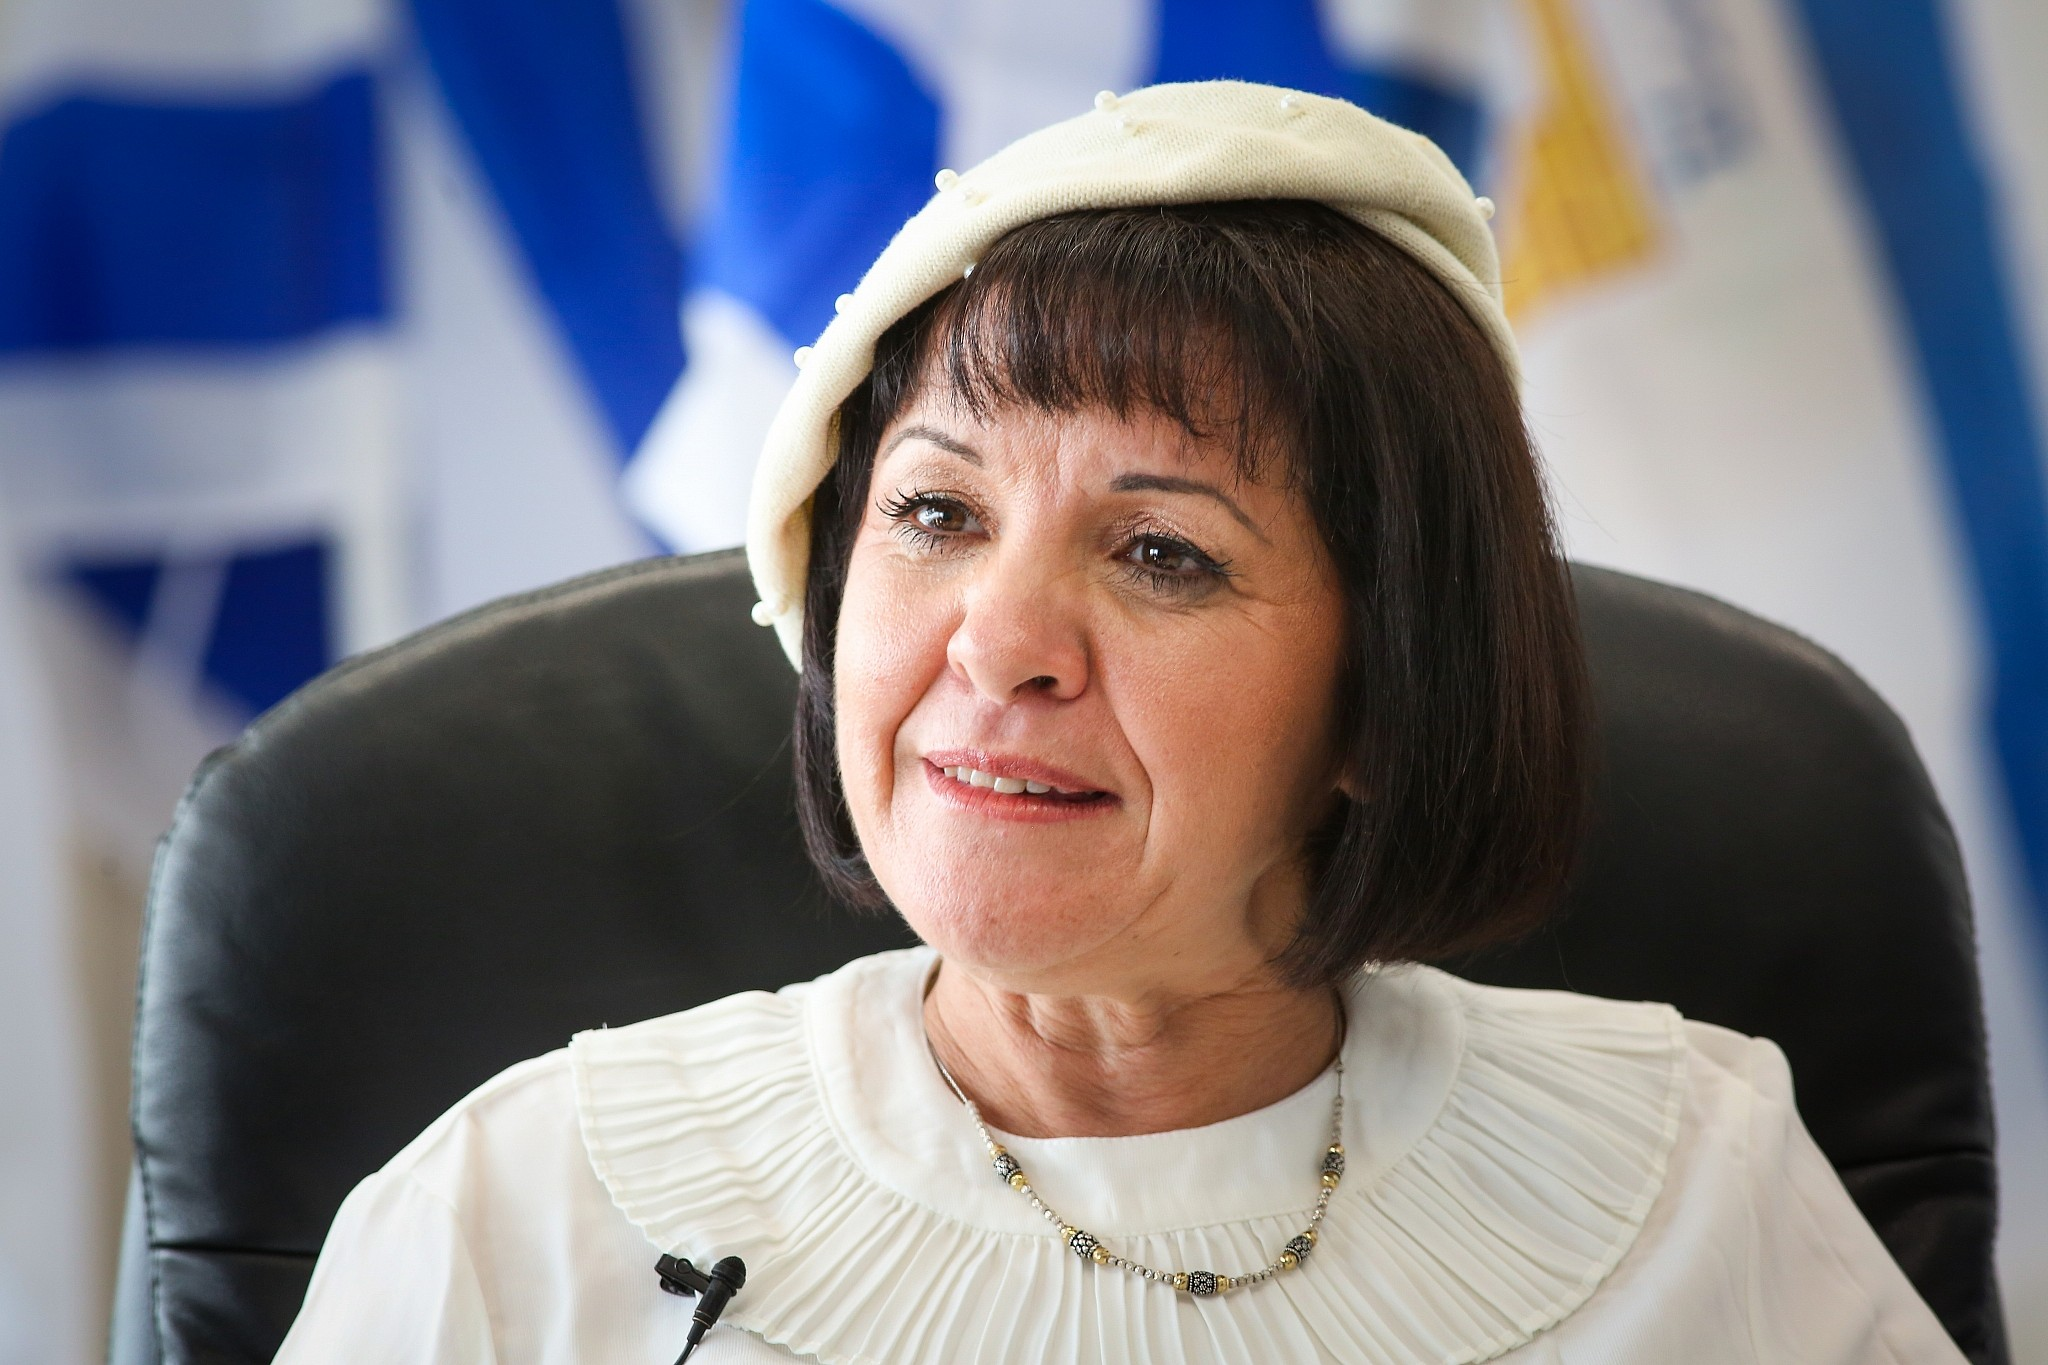 Beit Shemesh: Beit Shemesh's First Female Mayor Wants Her City To Be A